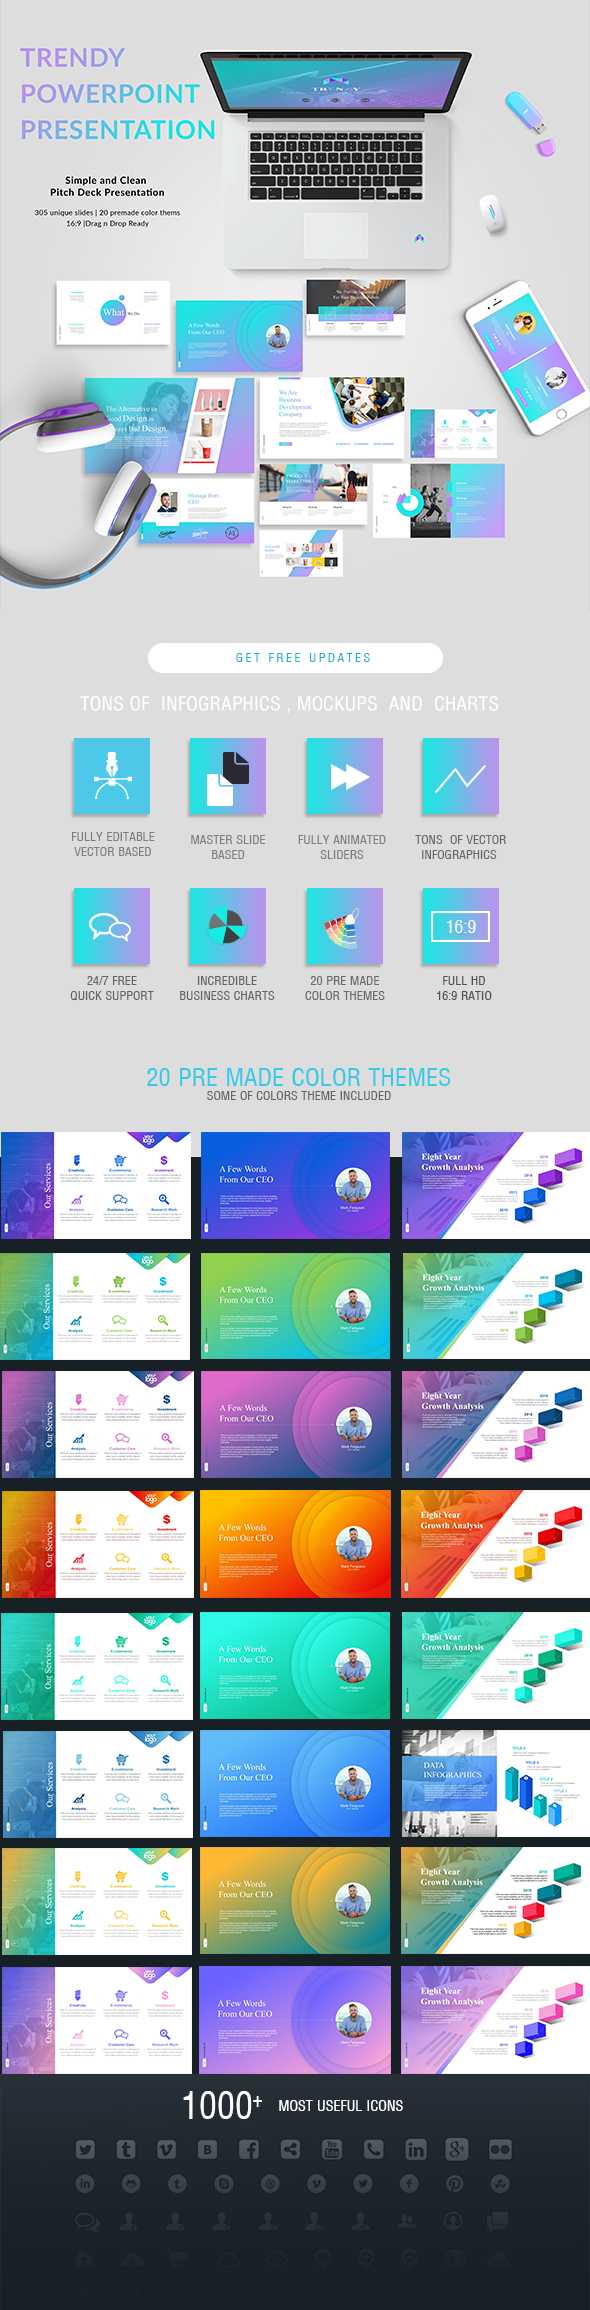 Pitch Deck PowerPoint Presentation - PowerPoint Templates Presentation Templates